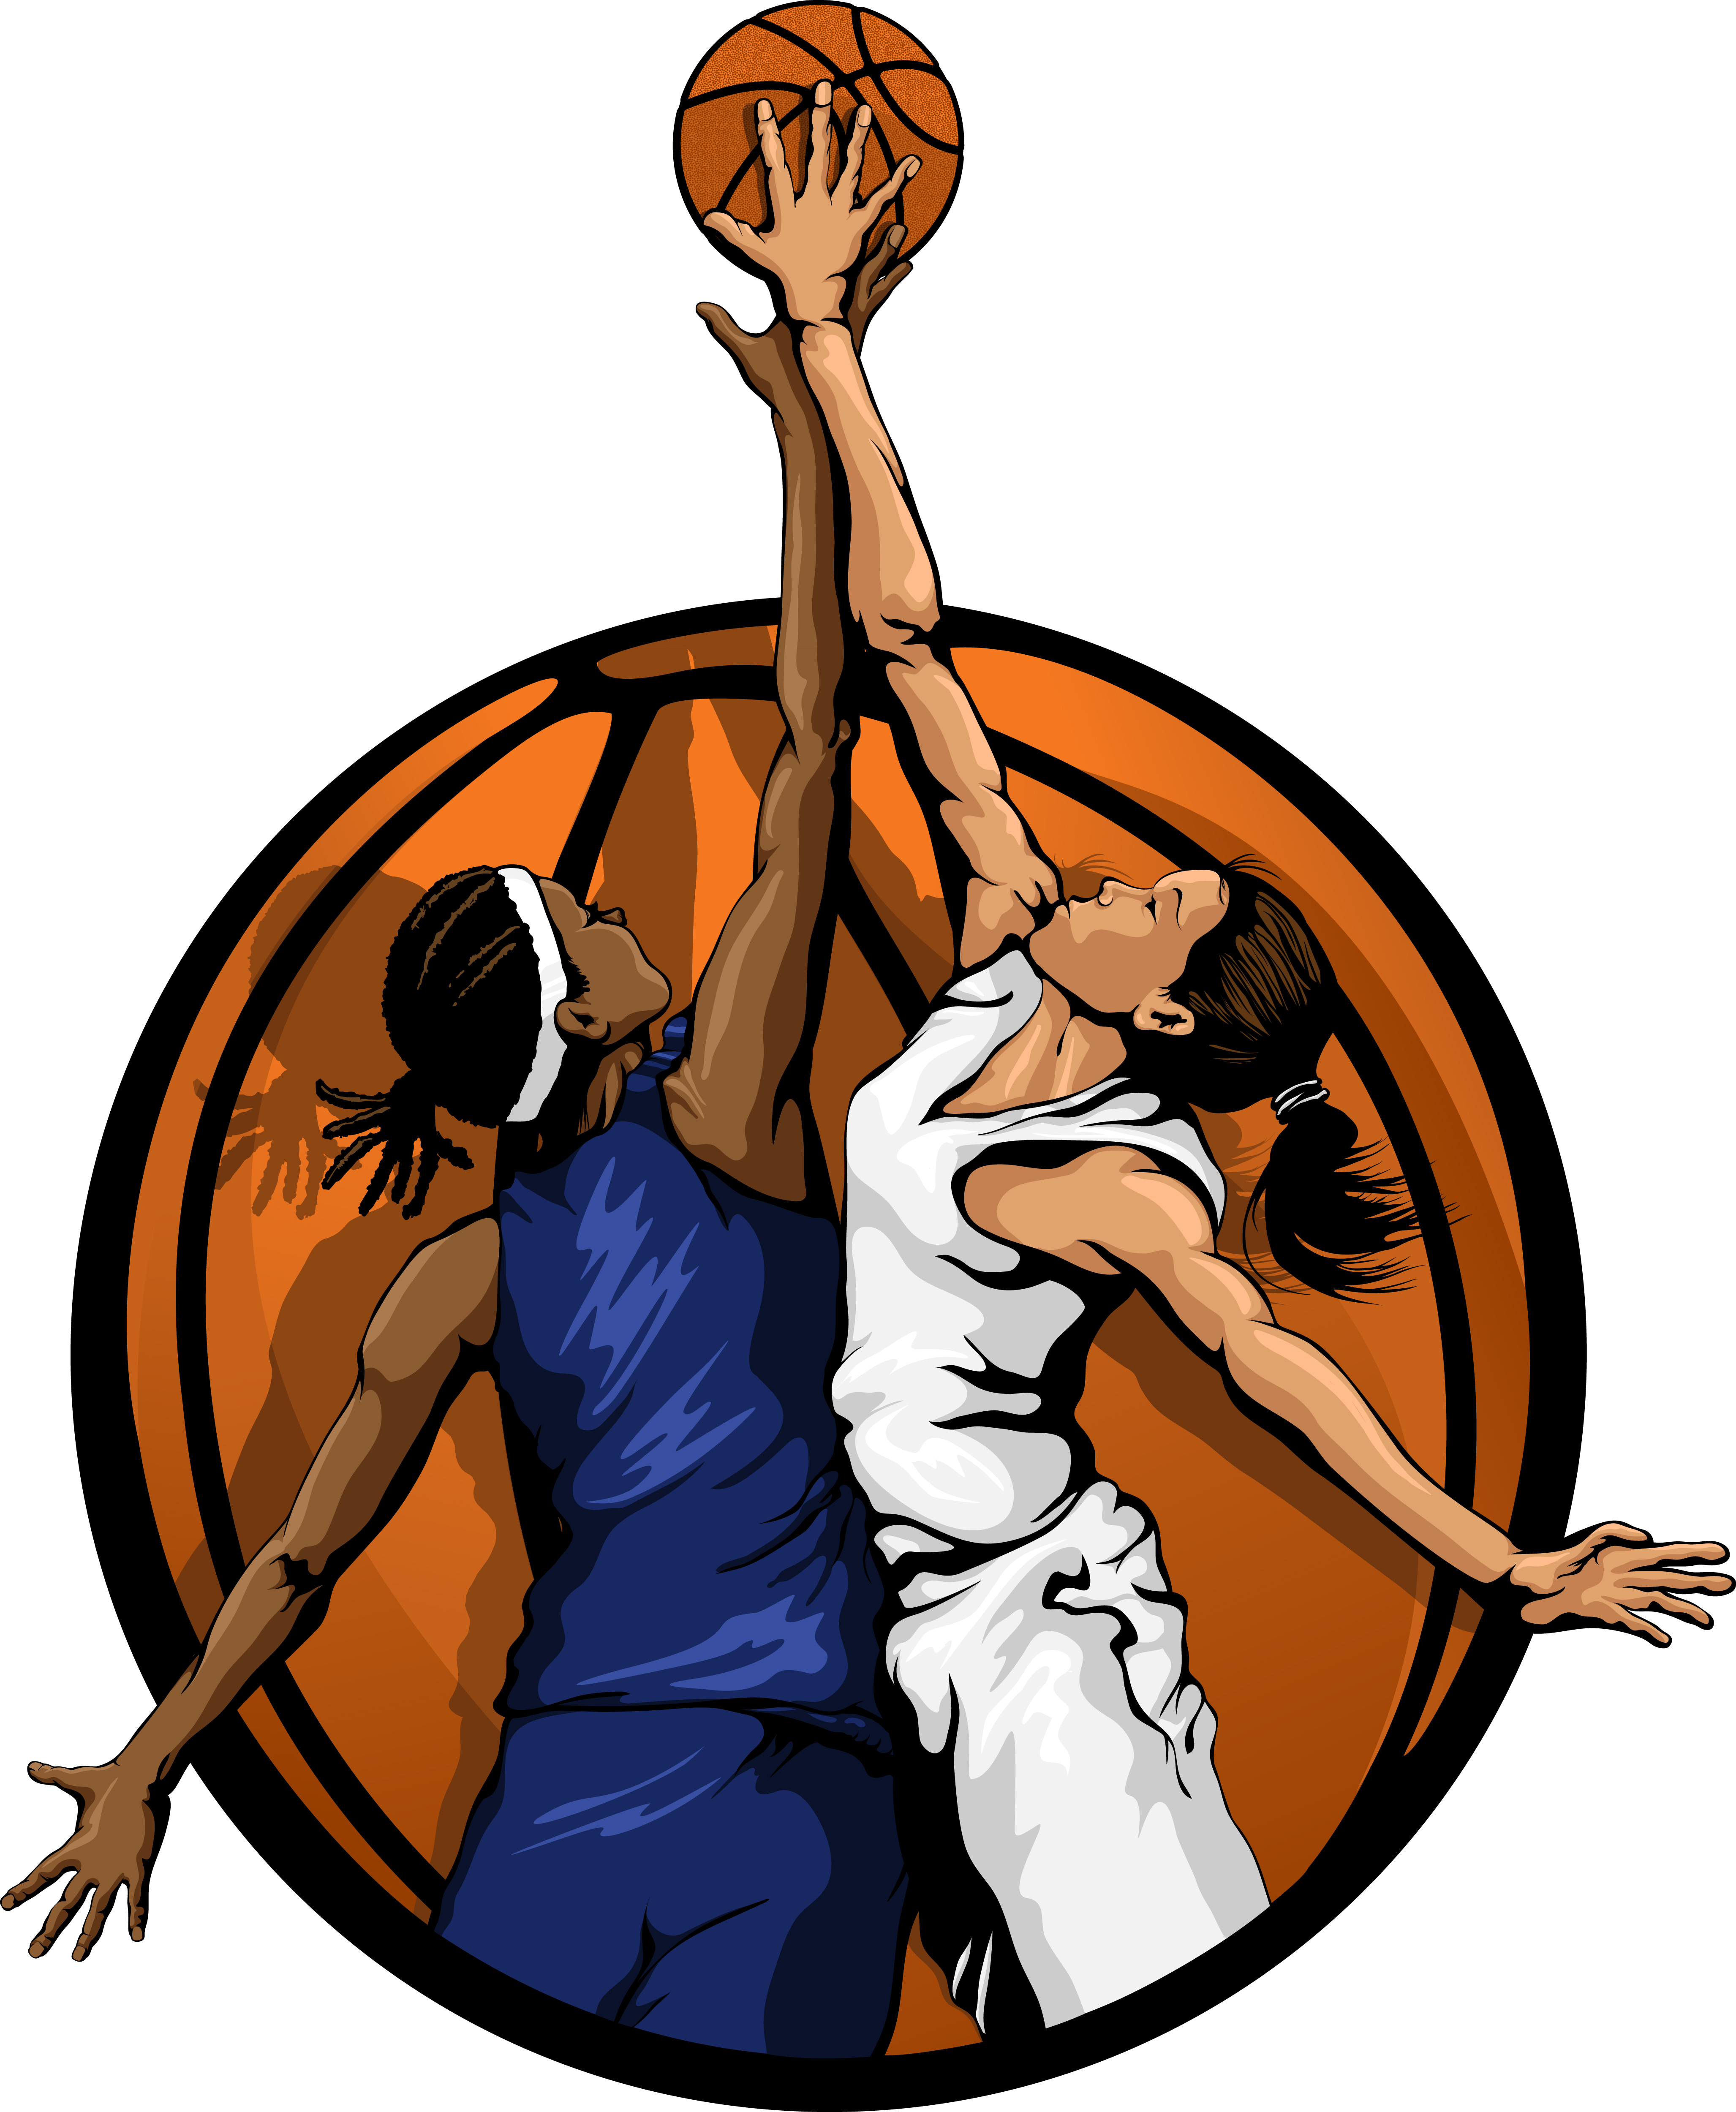 basketball player clipart at getdrawings com free for personal use rh getdrawings com Girl Shooting Basketball girl basketball clipart free